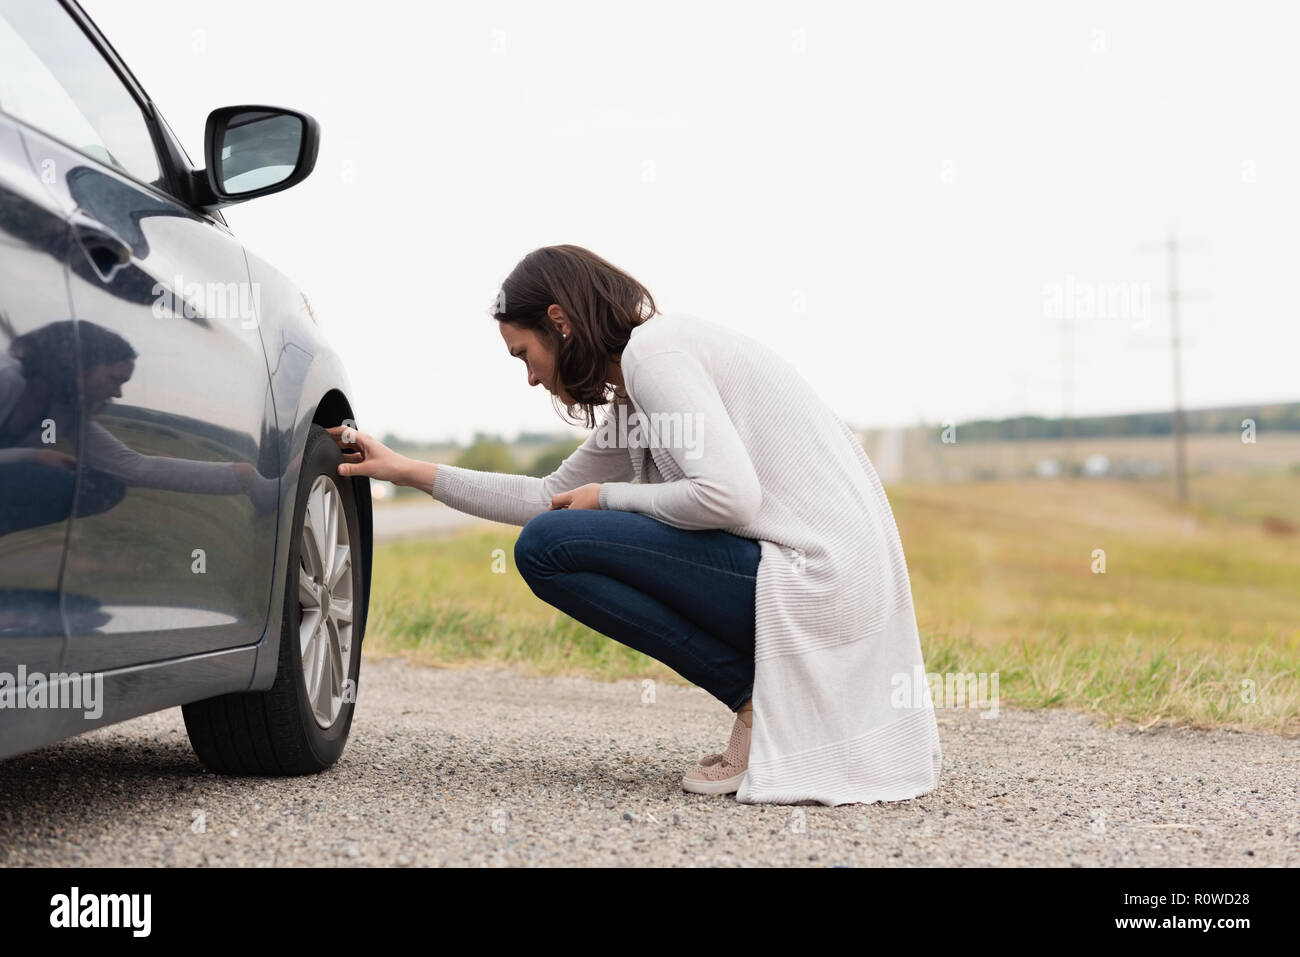 Woman checking car tyre during breakdown - Stock Image